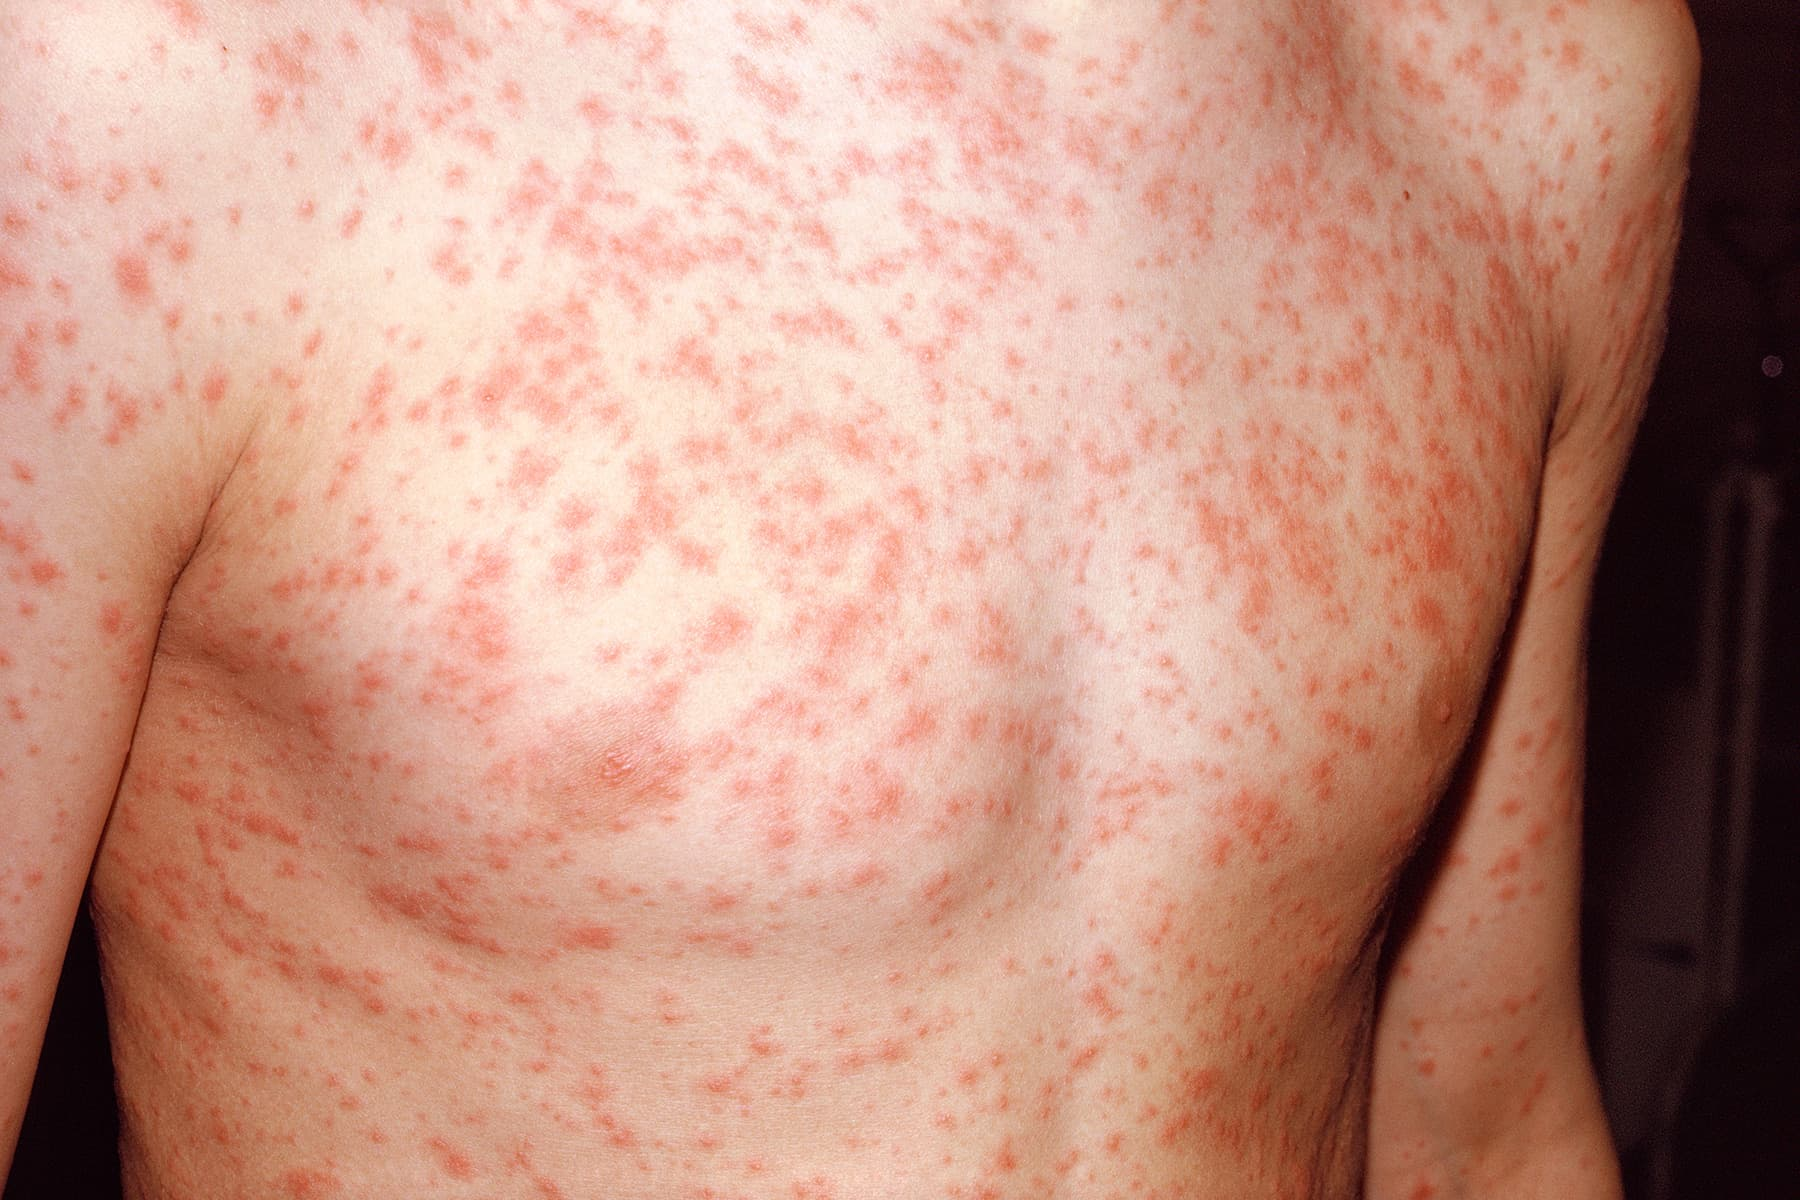 Simply rash after fever adult opinion